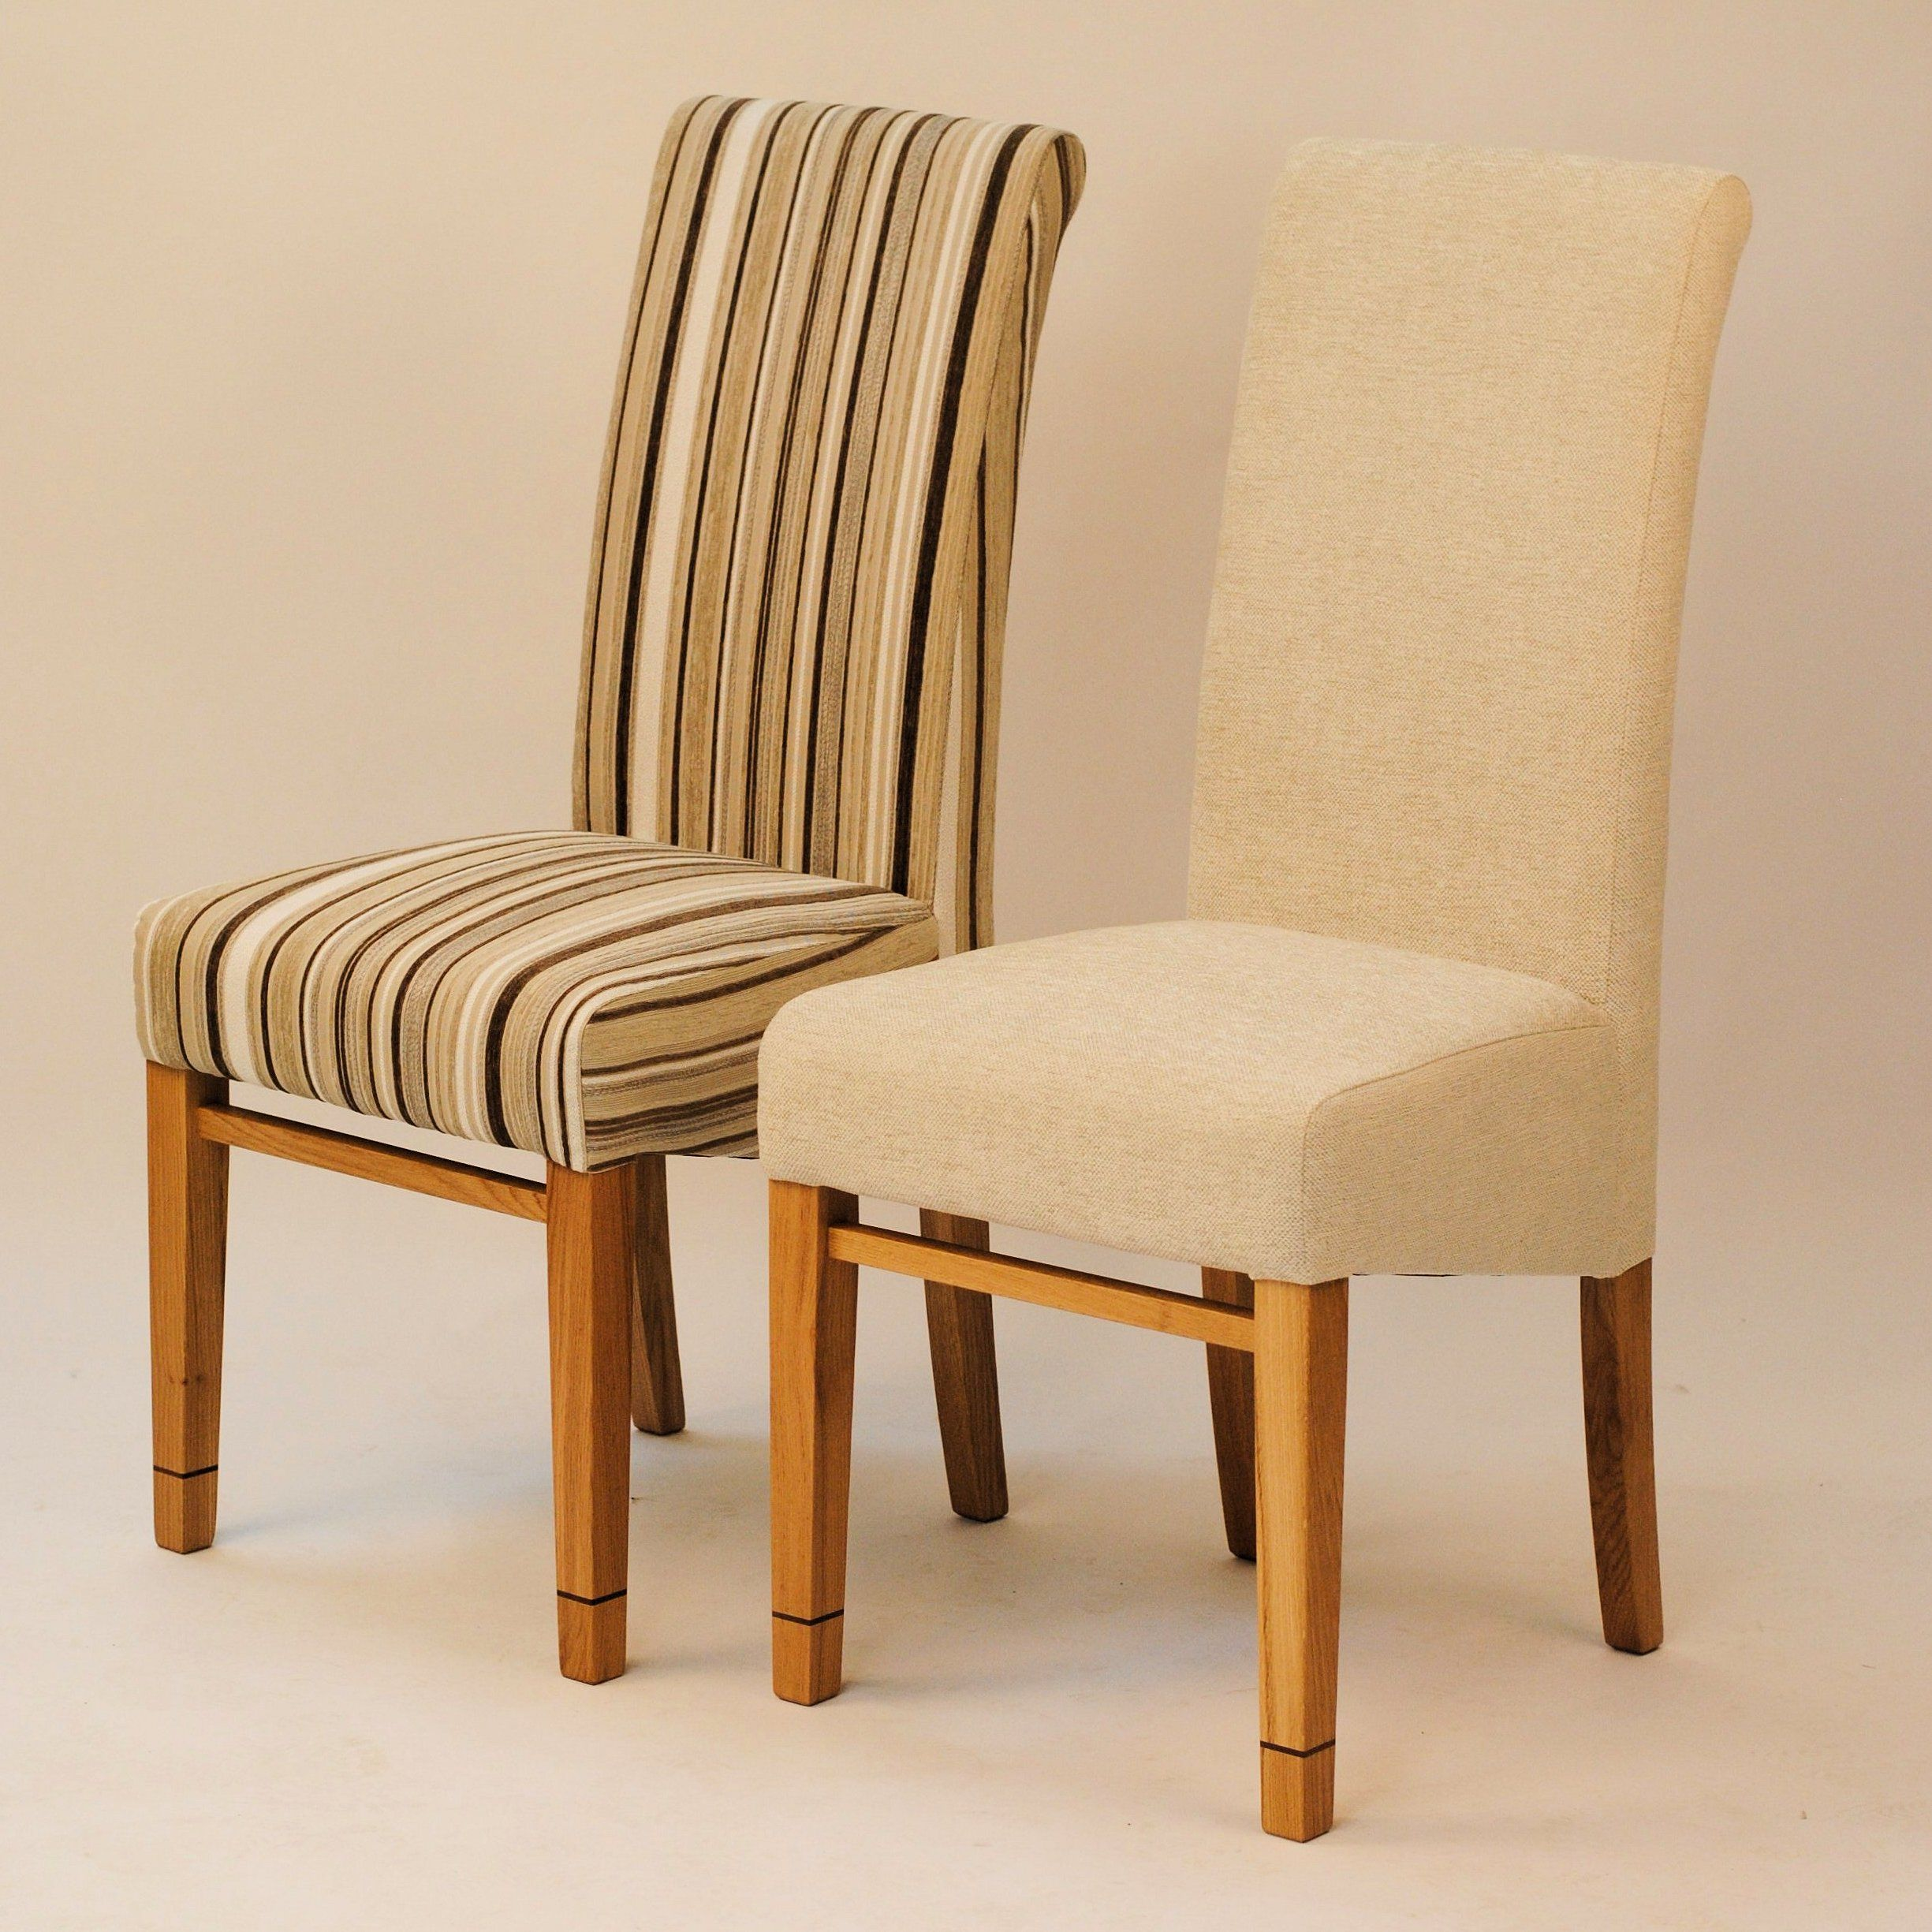 Bow515 Upholstered Dining Chair